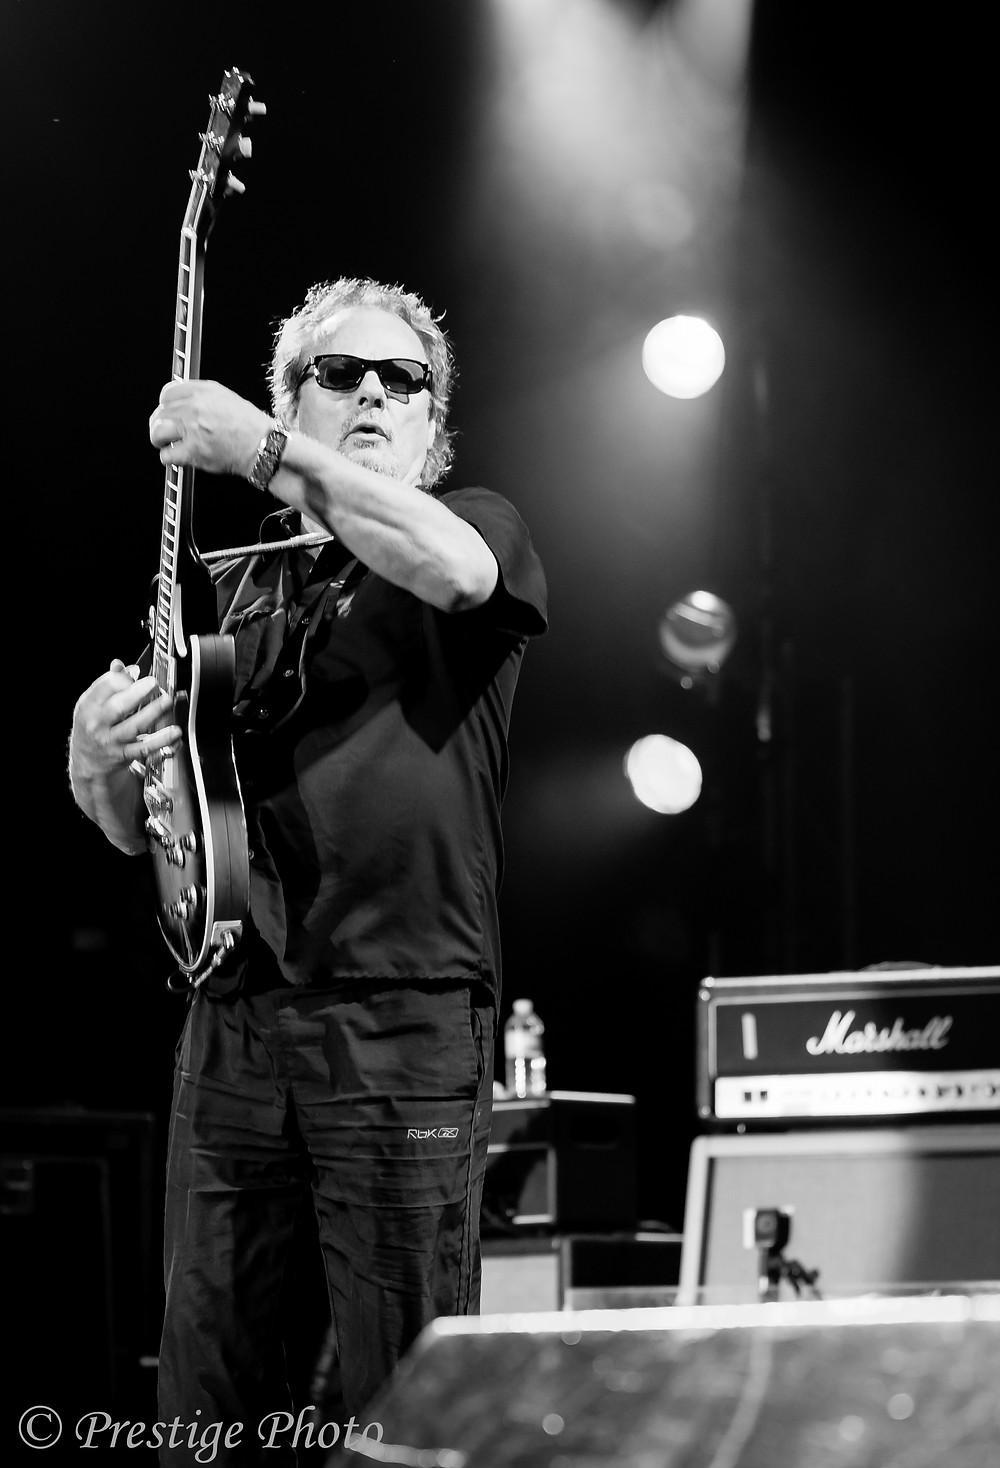 April Wine / Myles Goodwyn - Prestige Photo